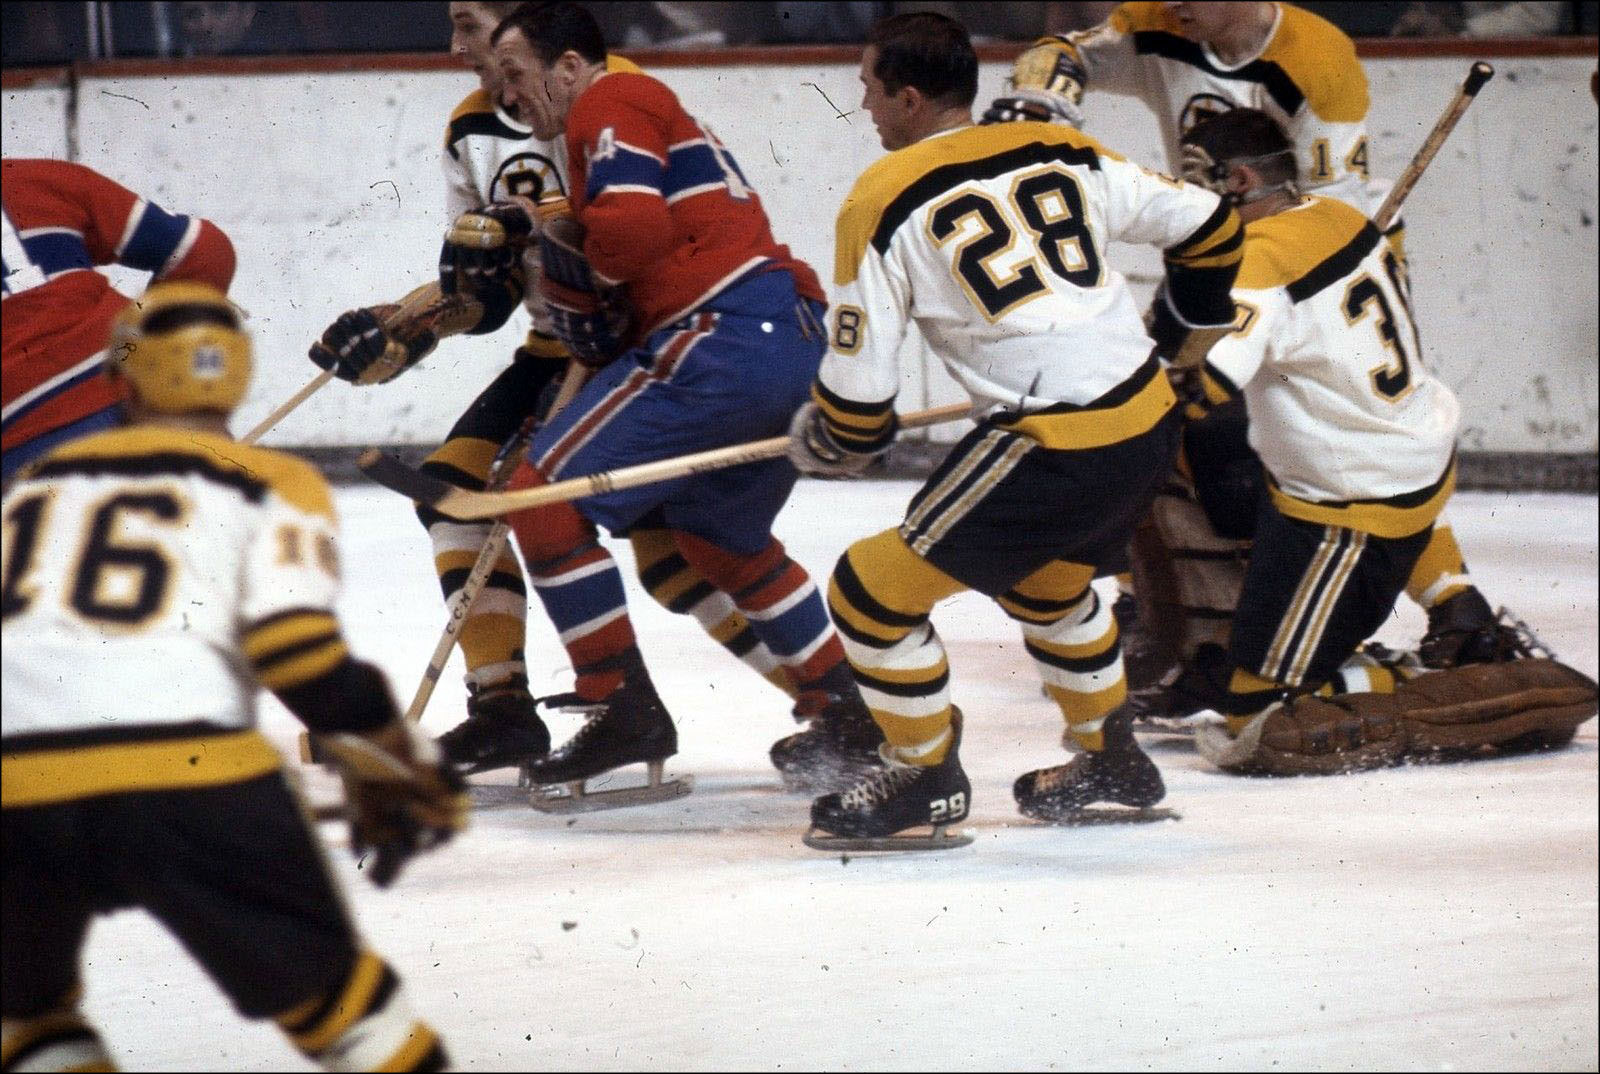 low priced c5a4b 9a429 The Sporting Life #2: Bruins vs. Canadiens, Mid-1960s ...